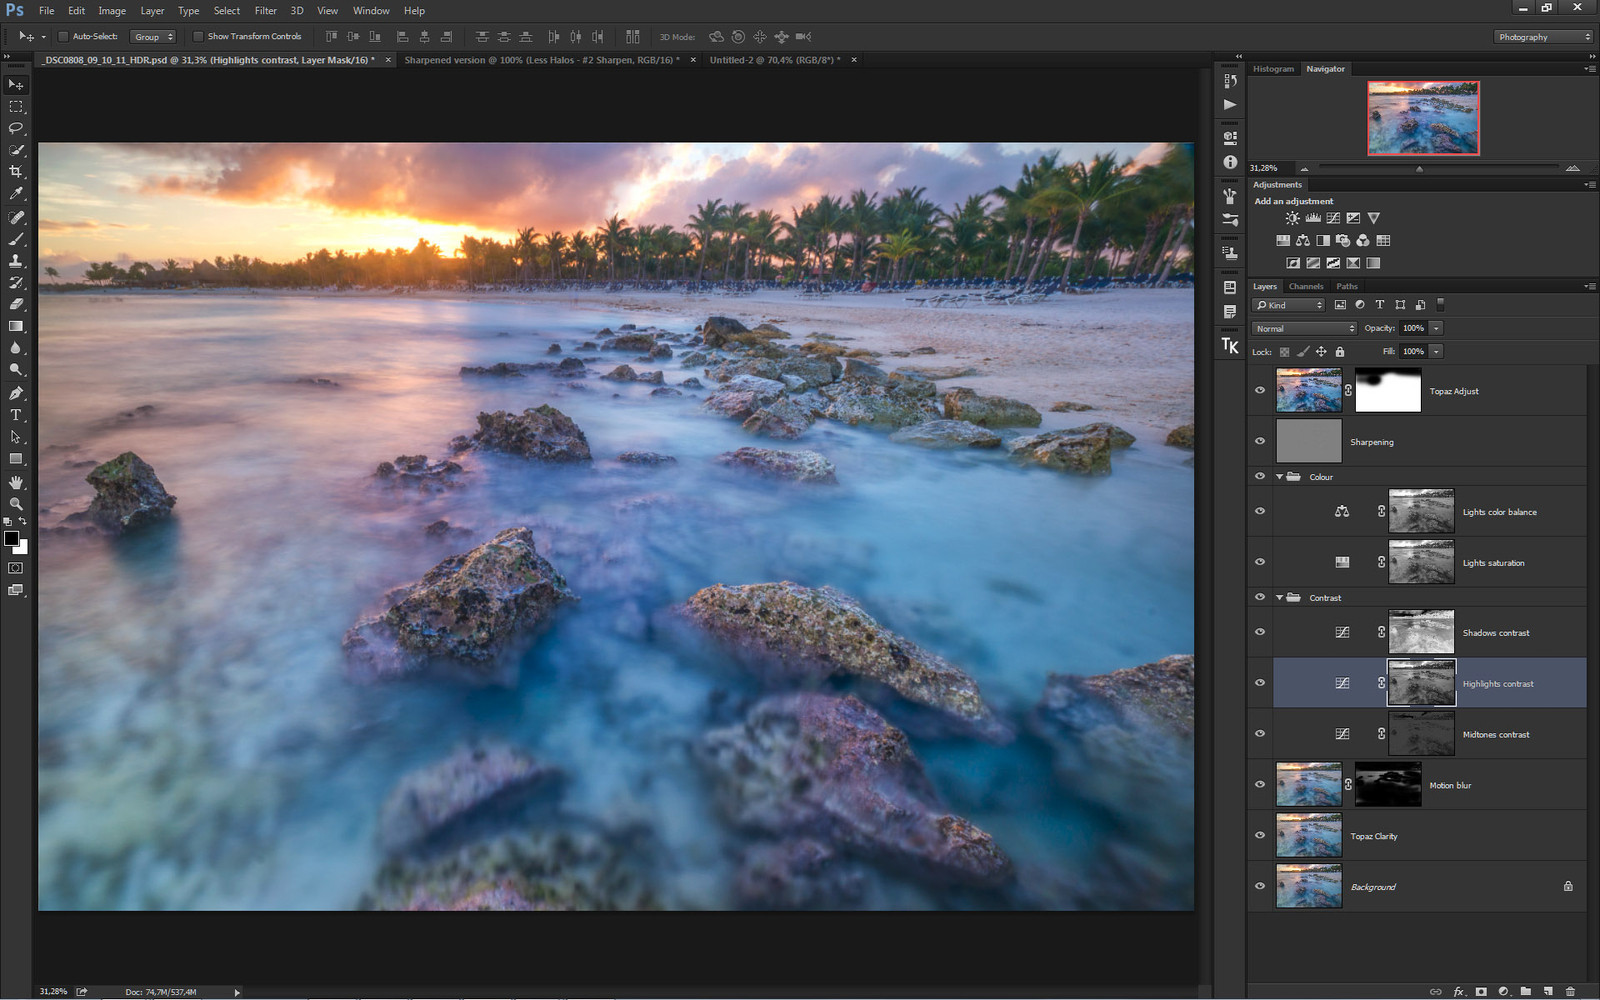 Post-processing with luminosity masks